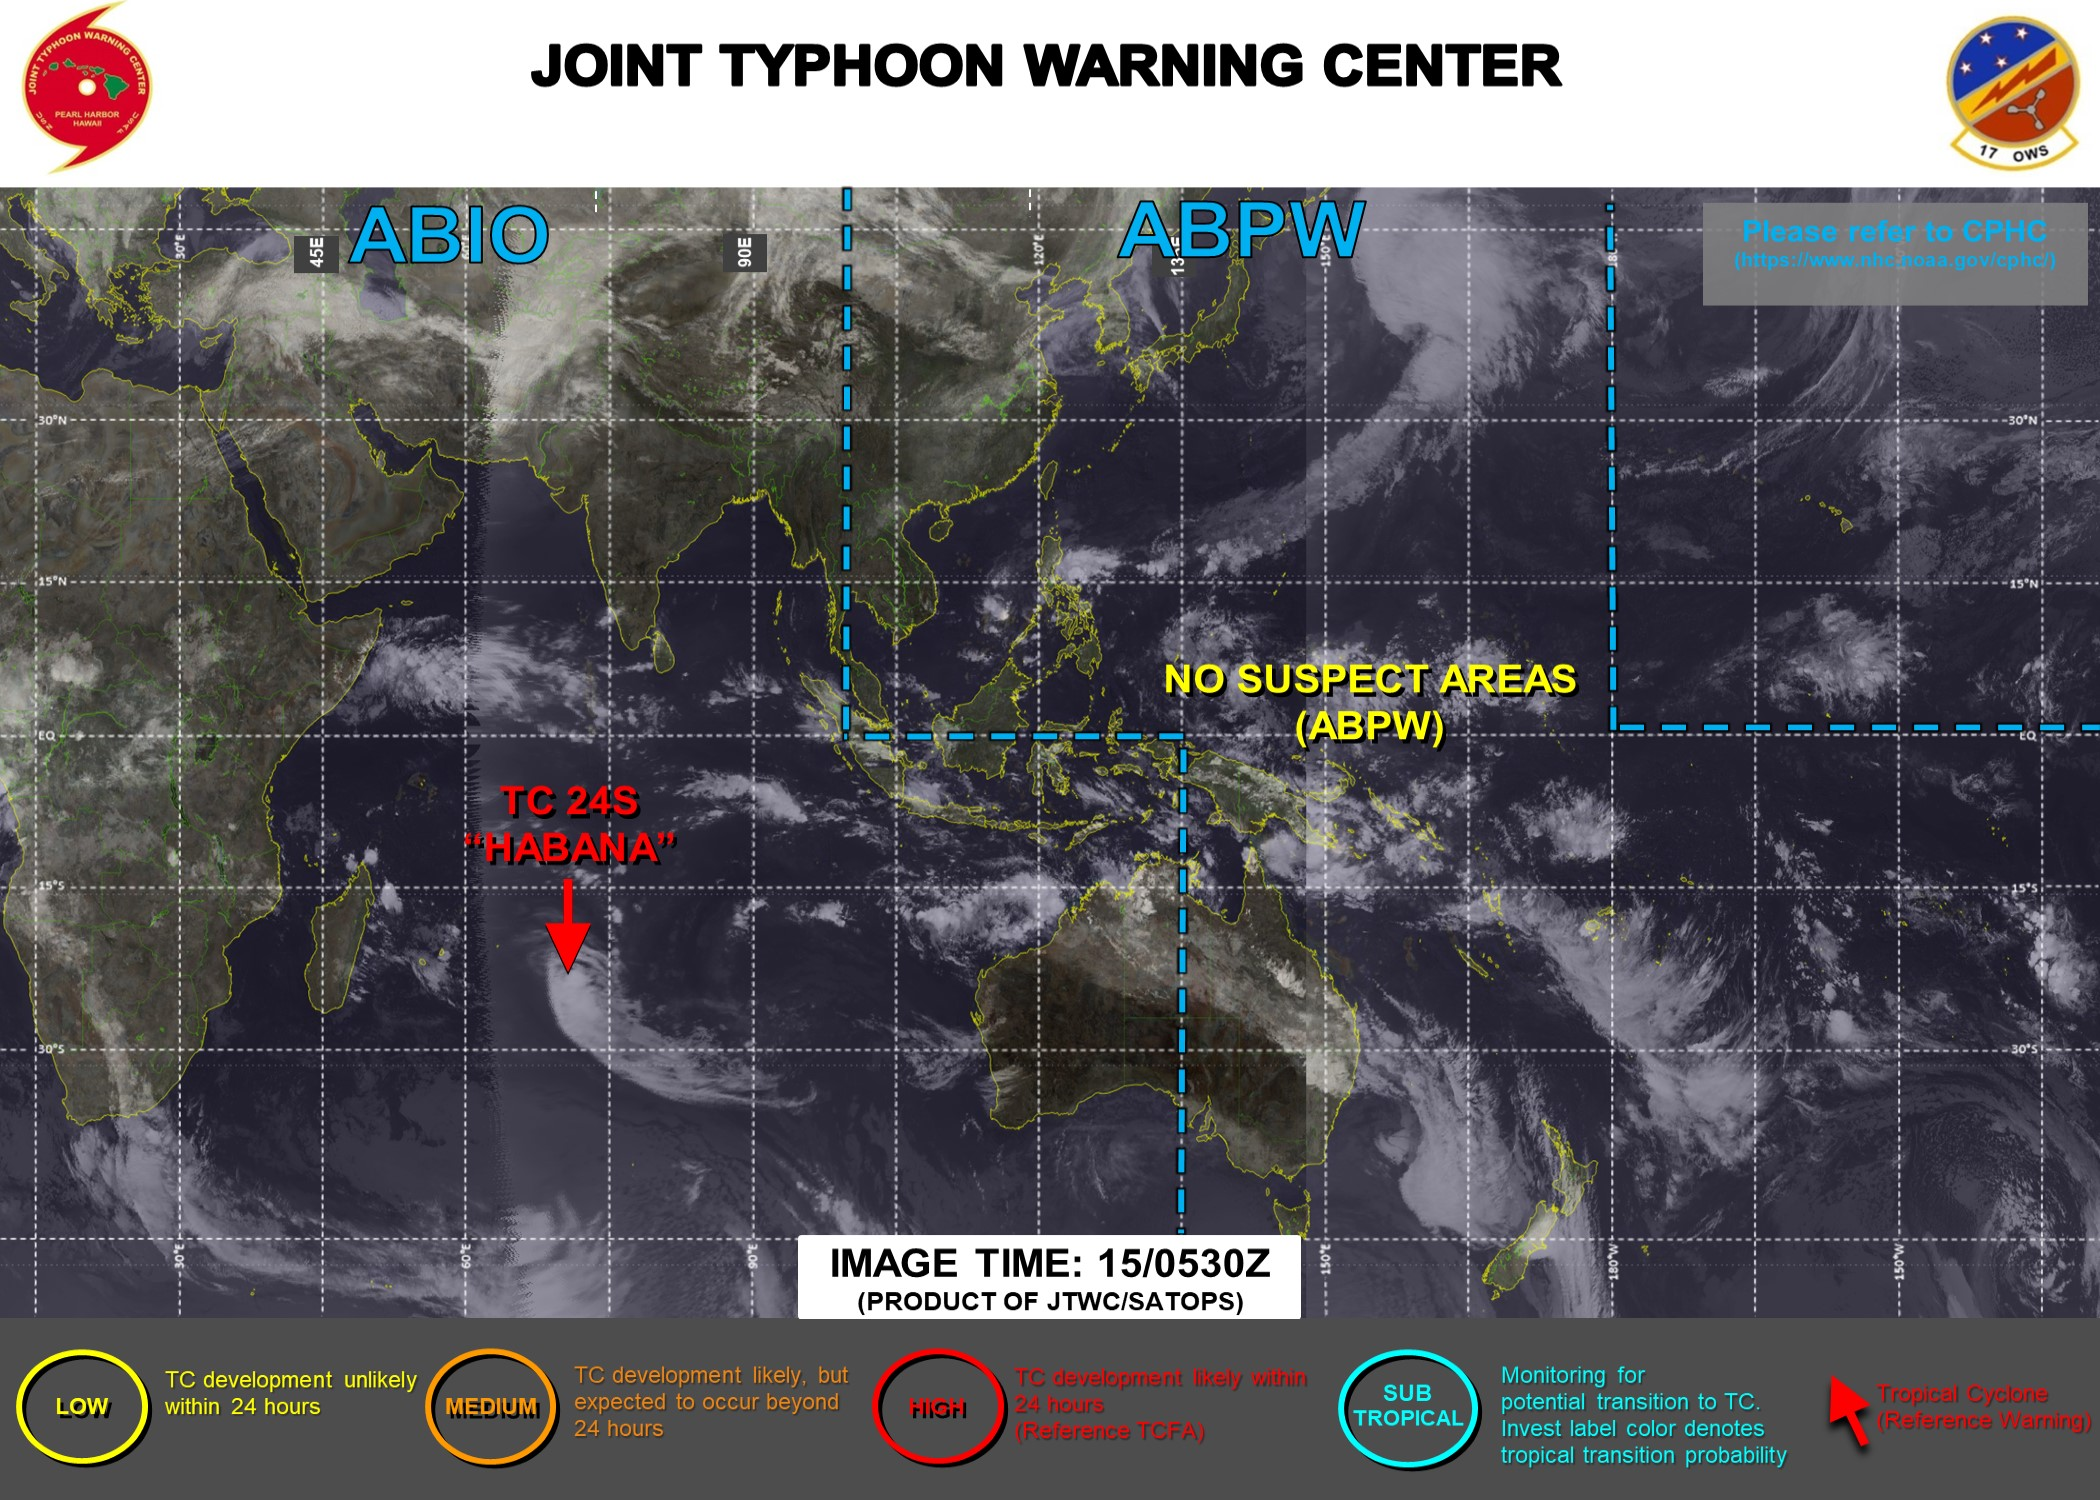 15/09UTC. JTWC HAS BEEN ISSUING 12HOURLY WARNINGS ON TC 24S(HABANA) ALONG WITH 3HOURLY SATELLITE BULLETINS.